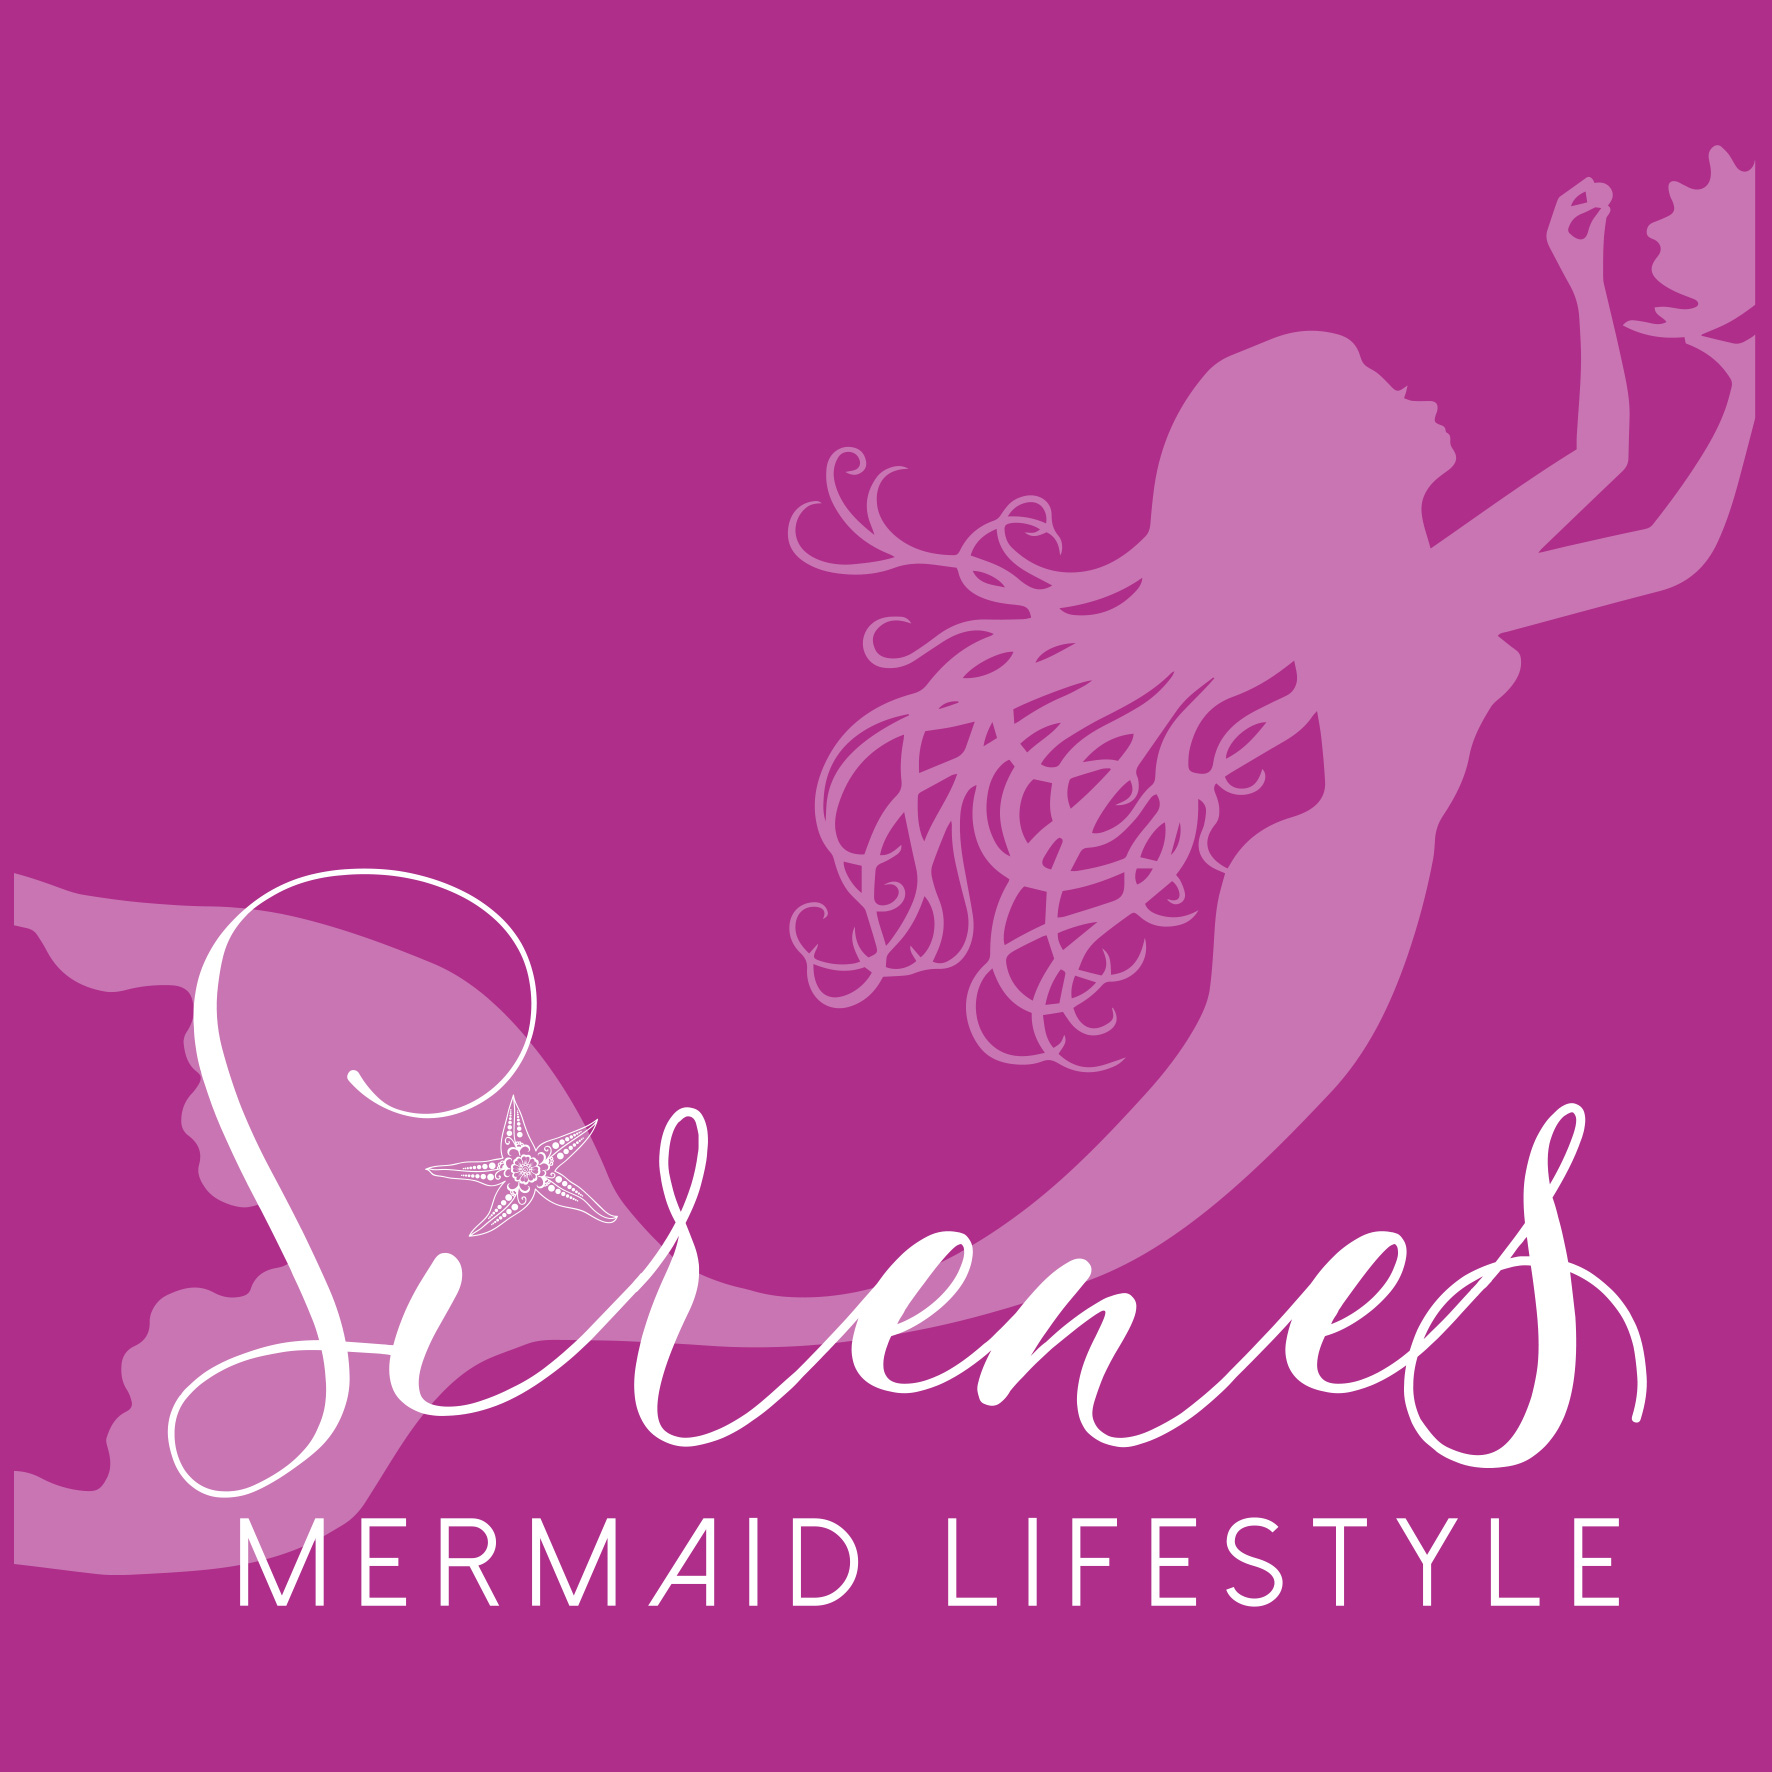 Sirenes Mermaid Lifestyle